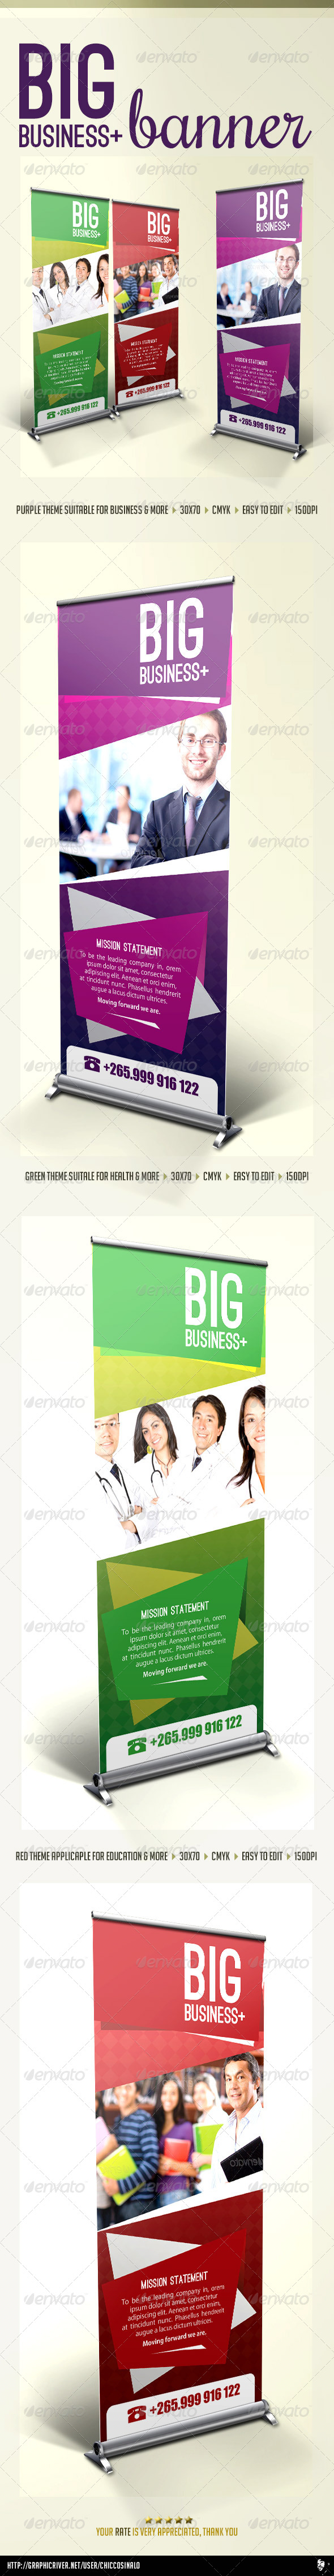 Big Business Banner Template - Signage Print Templates